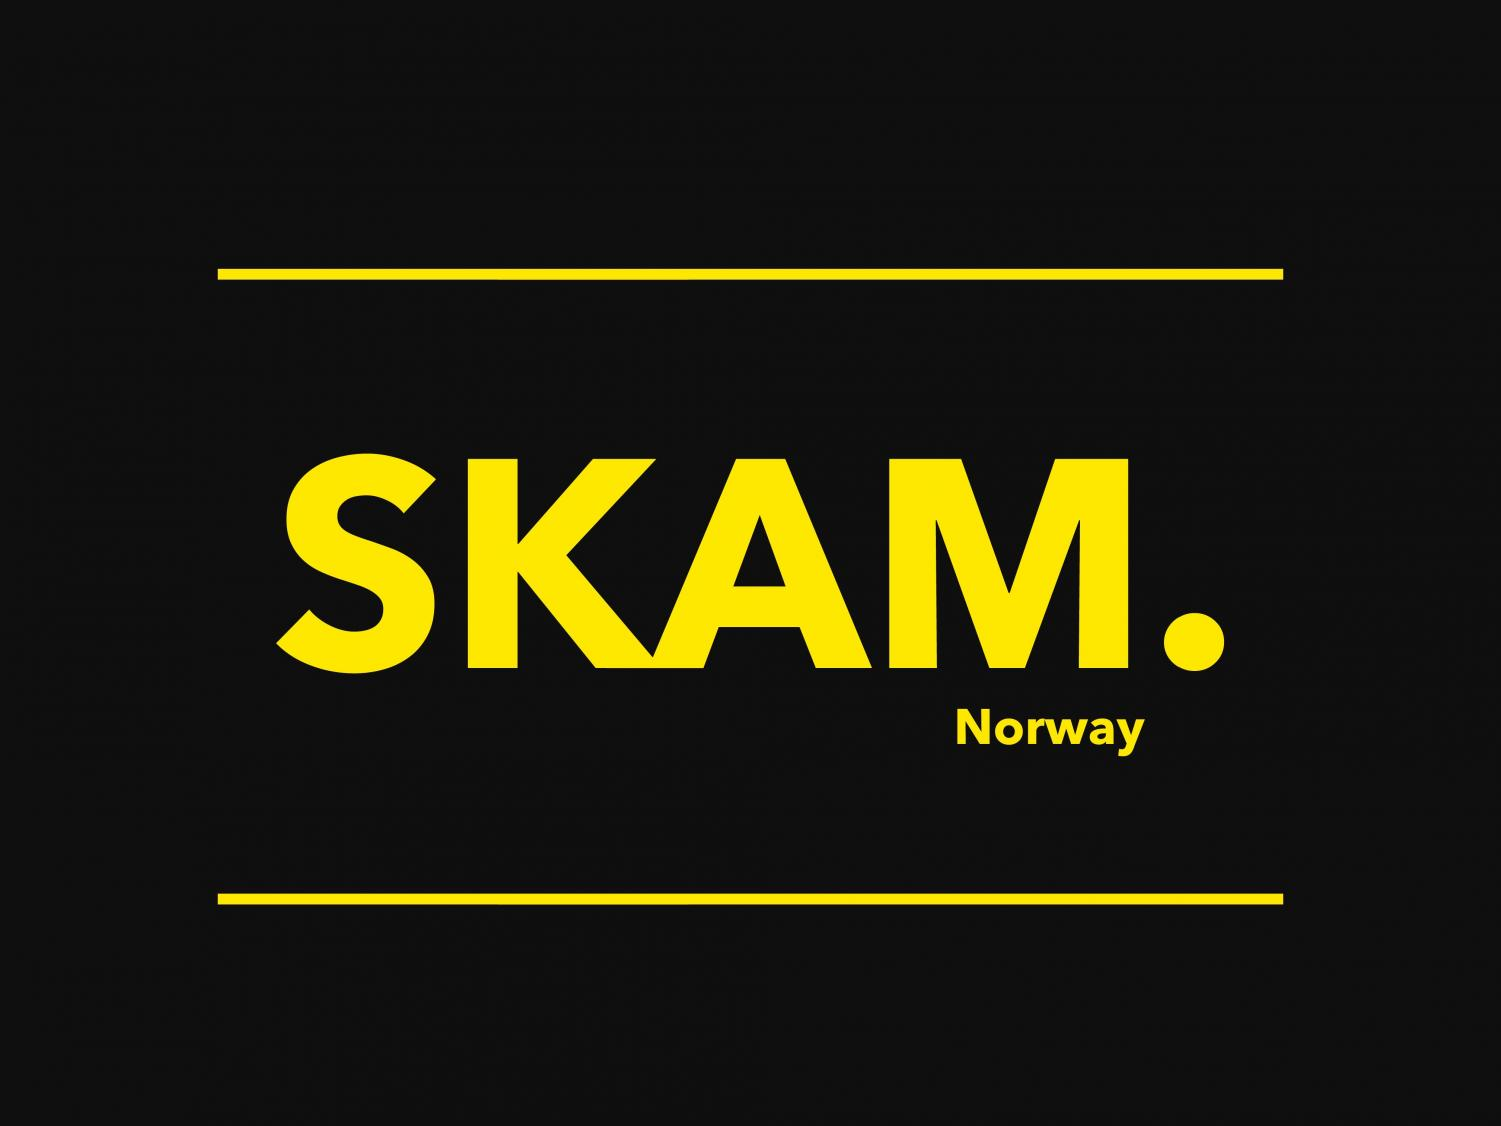 Taking place in Norway, SKAM (meaning shame in Norwegian) tracks the lives of four high schoolers over the course of four seasons and tackles issues such as racism, mental health, sexual assault, homophobia and many more.